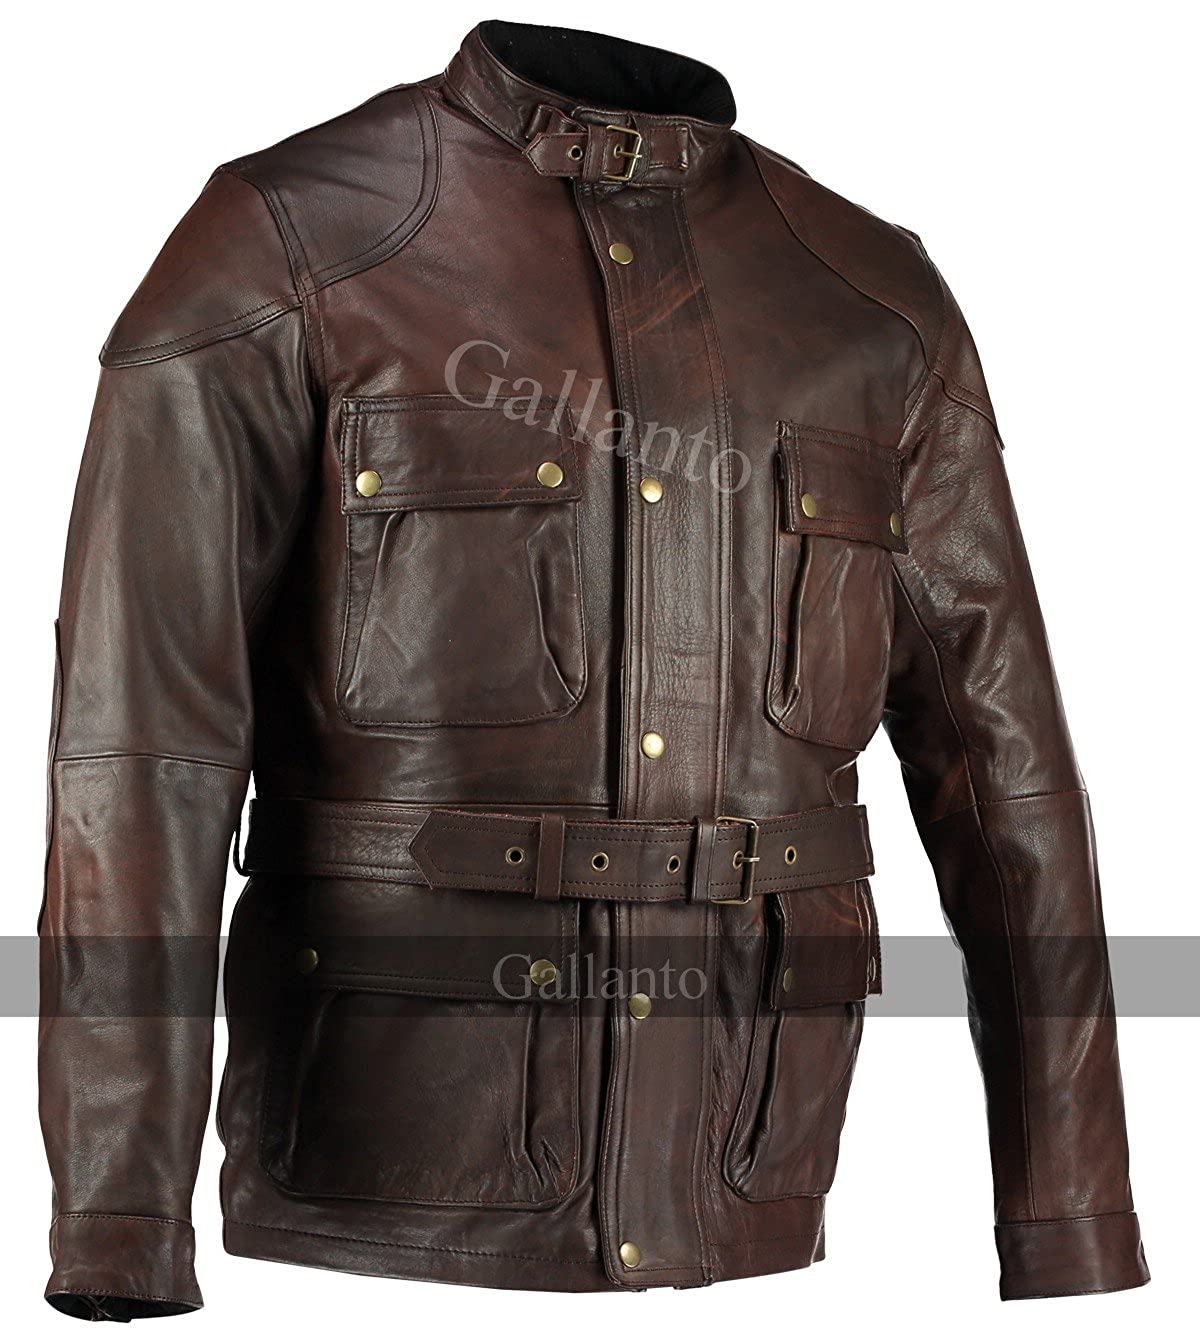 Gallanto Olive Green Benjamin Button Biker Mens Leather Jacket Motorcycle Armoured Vintage